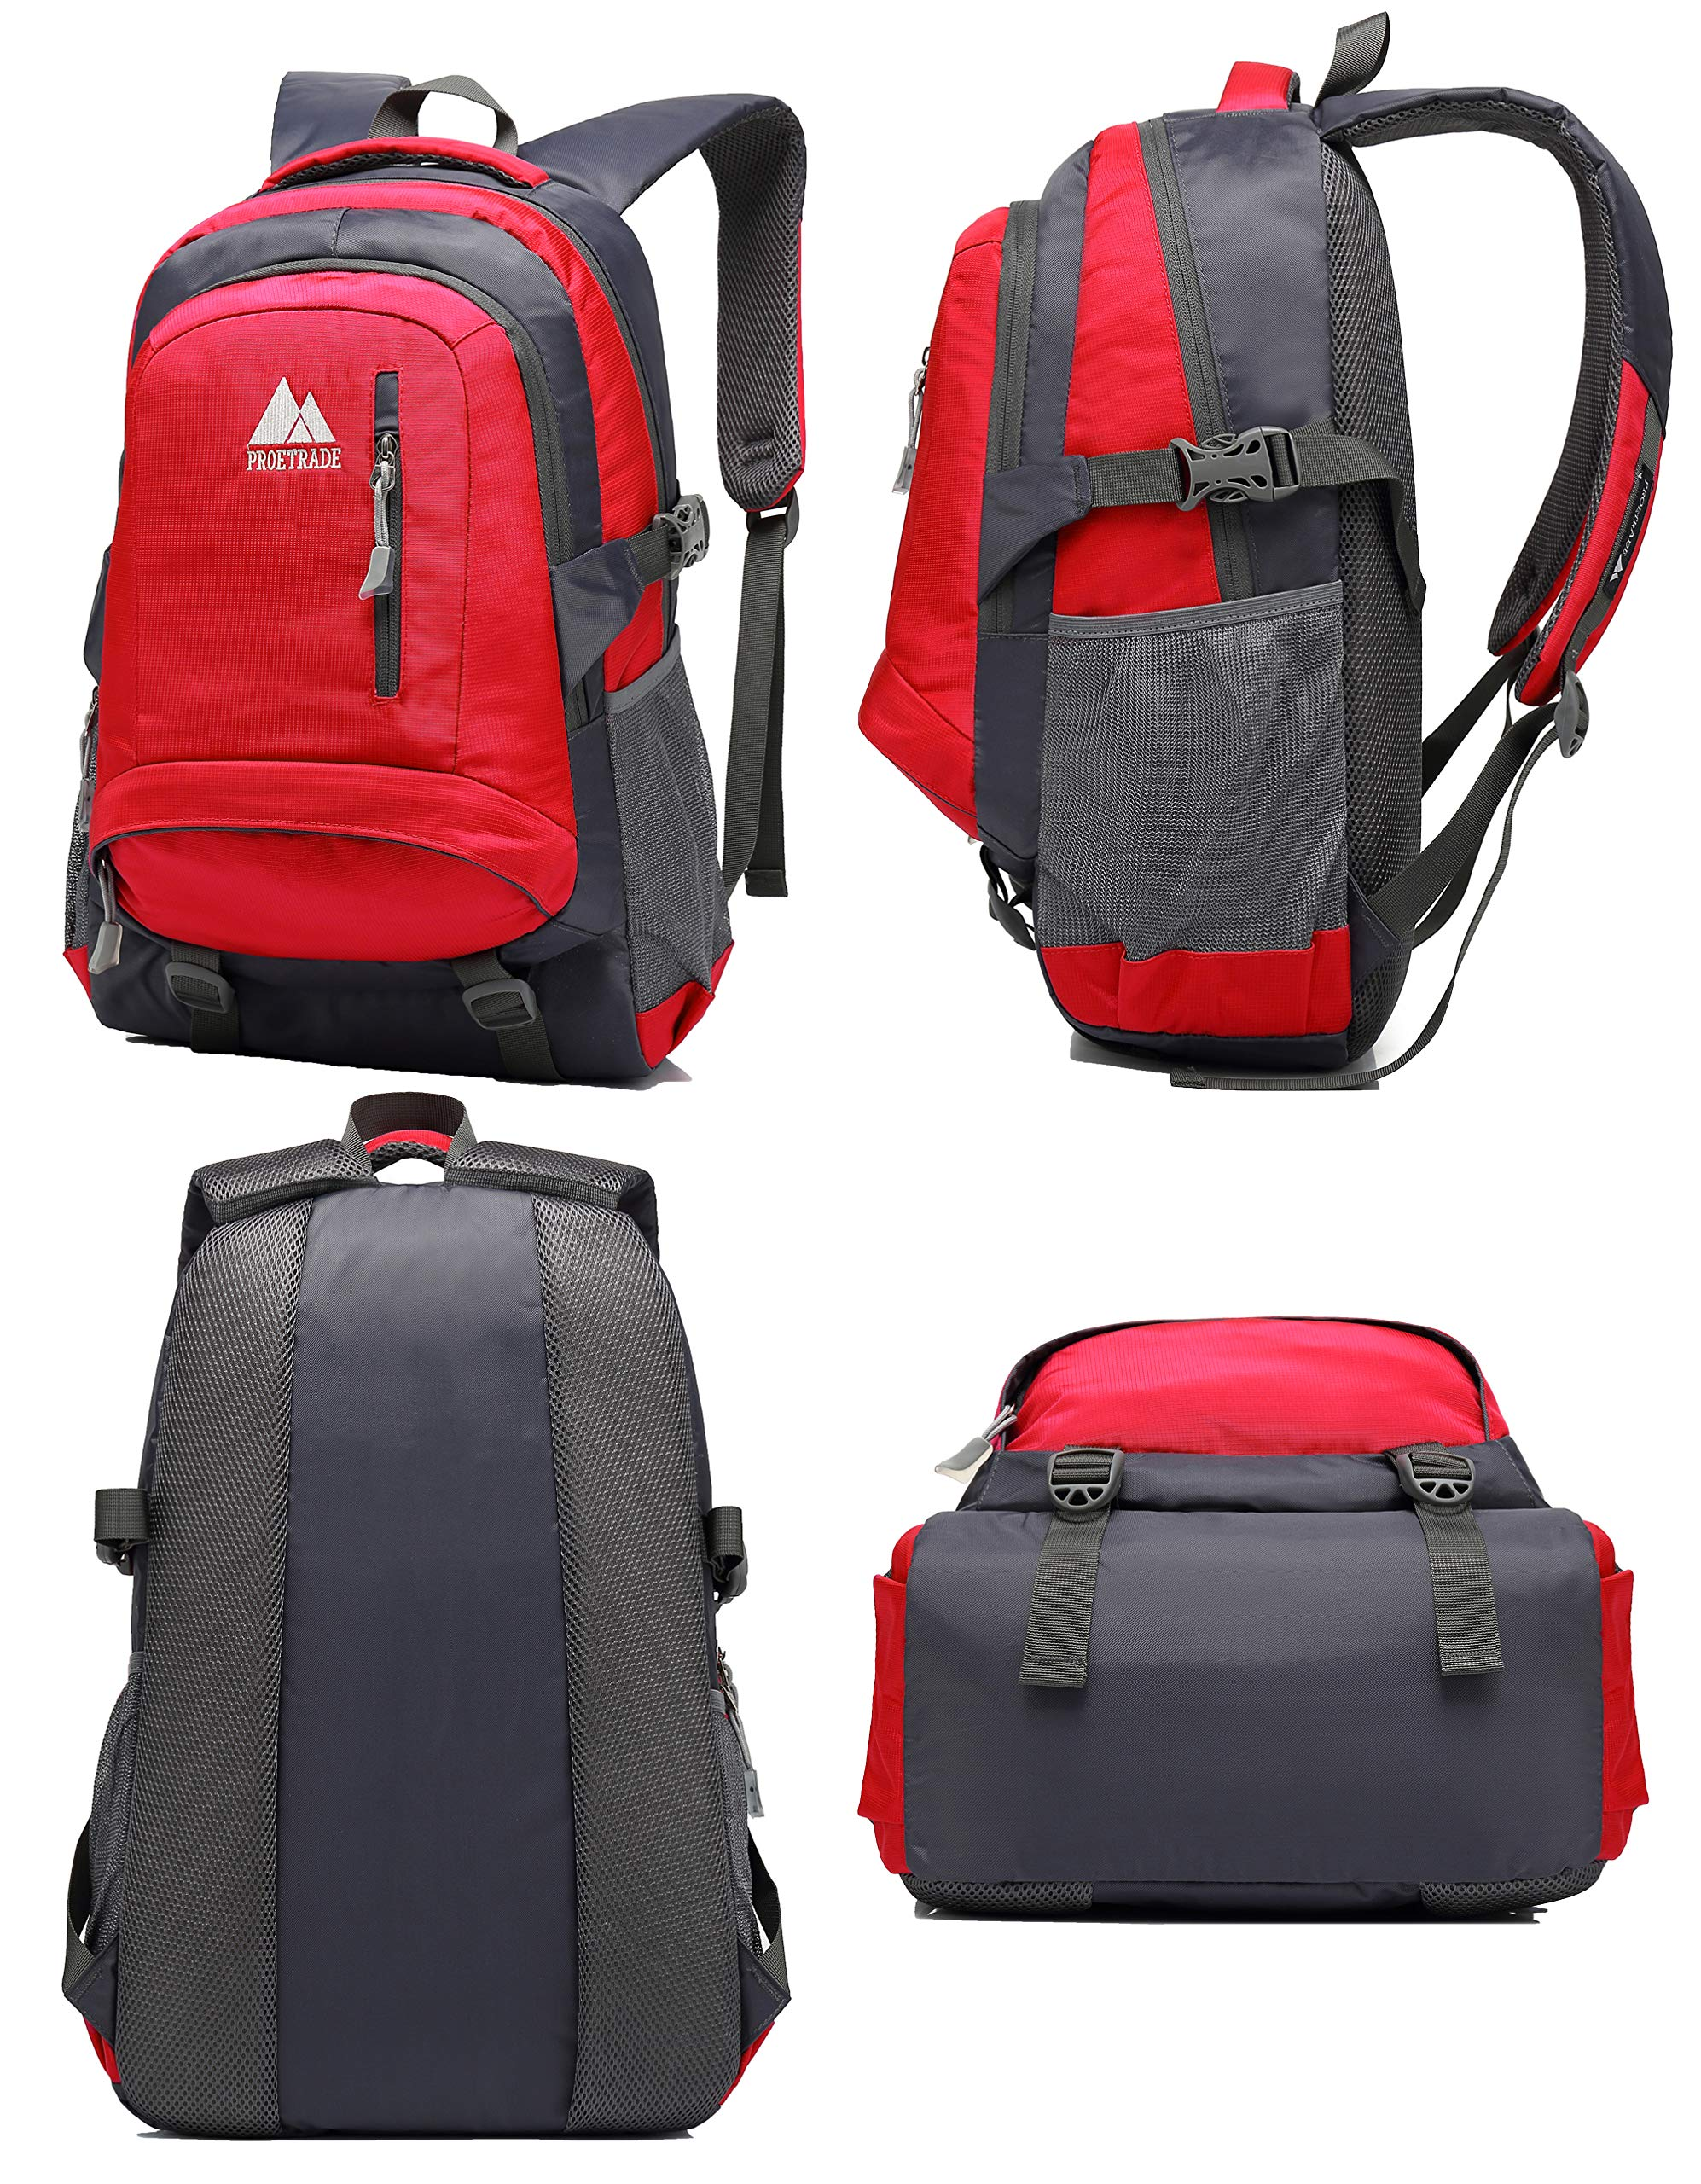 School Backpack BookBag For College Travel Hiking Fit Laptop Up to 15.6 Inch Water Resistant (Red) by ProEtrade (Image #5)